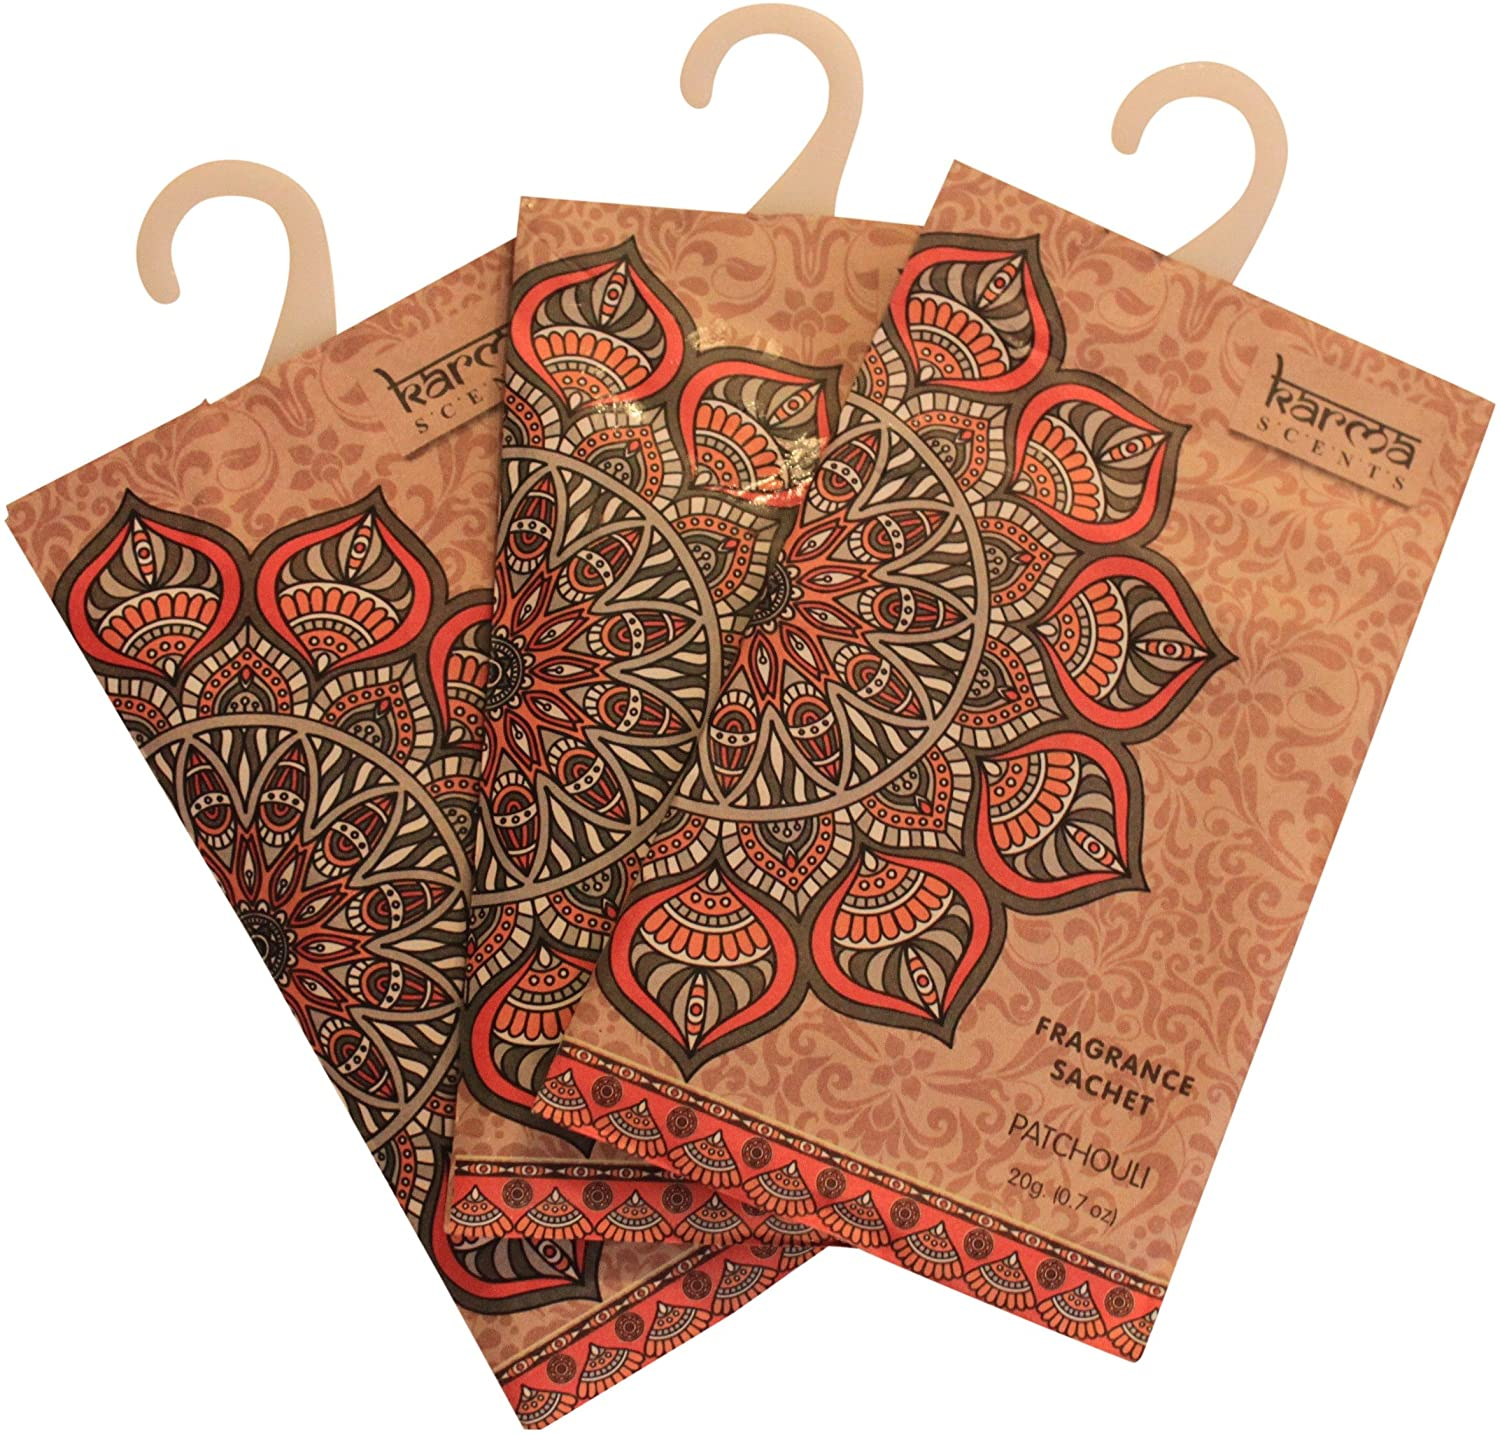 Karma Scents Premium Patchouli Scented Sachets for Drawers, Closets and Cars, Lovely Fresh Fragrance, Lot of 12 Bags